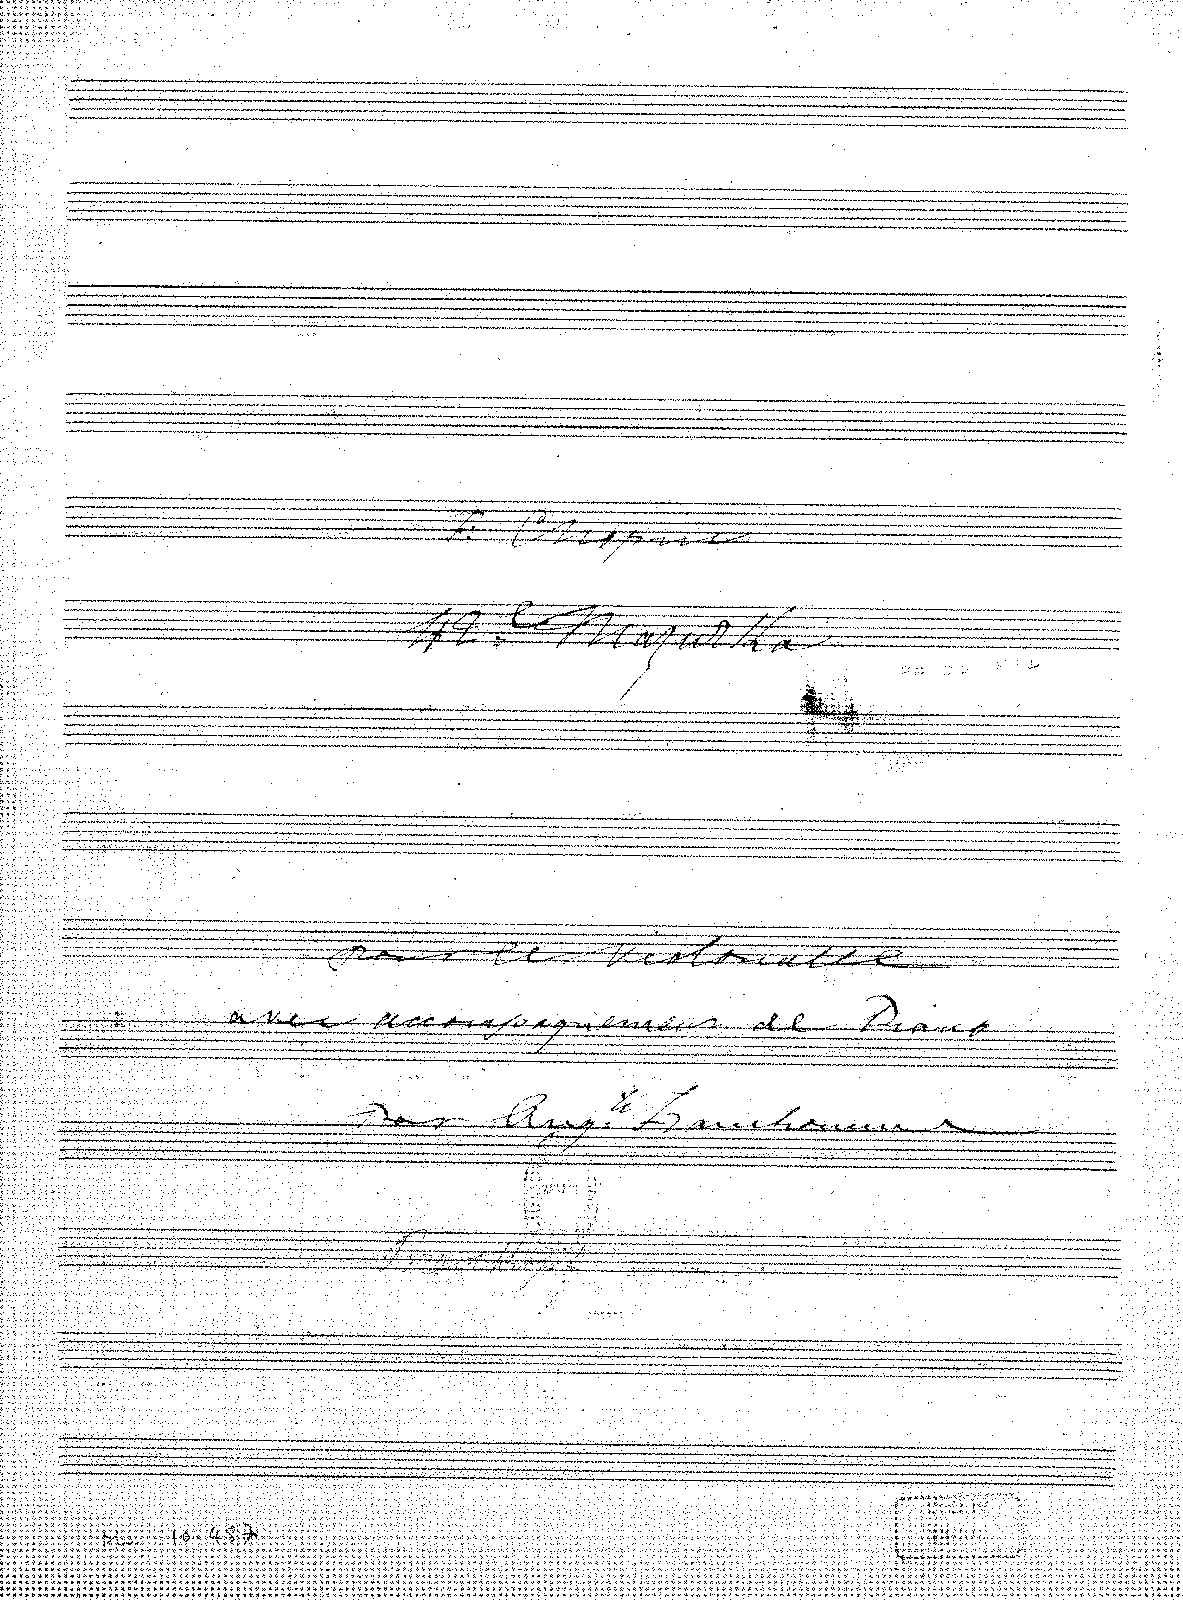 PMLP02280-Chopin - Mazurka Op63 No2 (Franchomme) for cello and piano manuscript.pdf